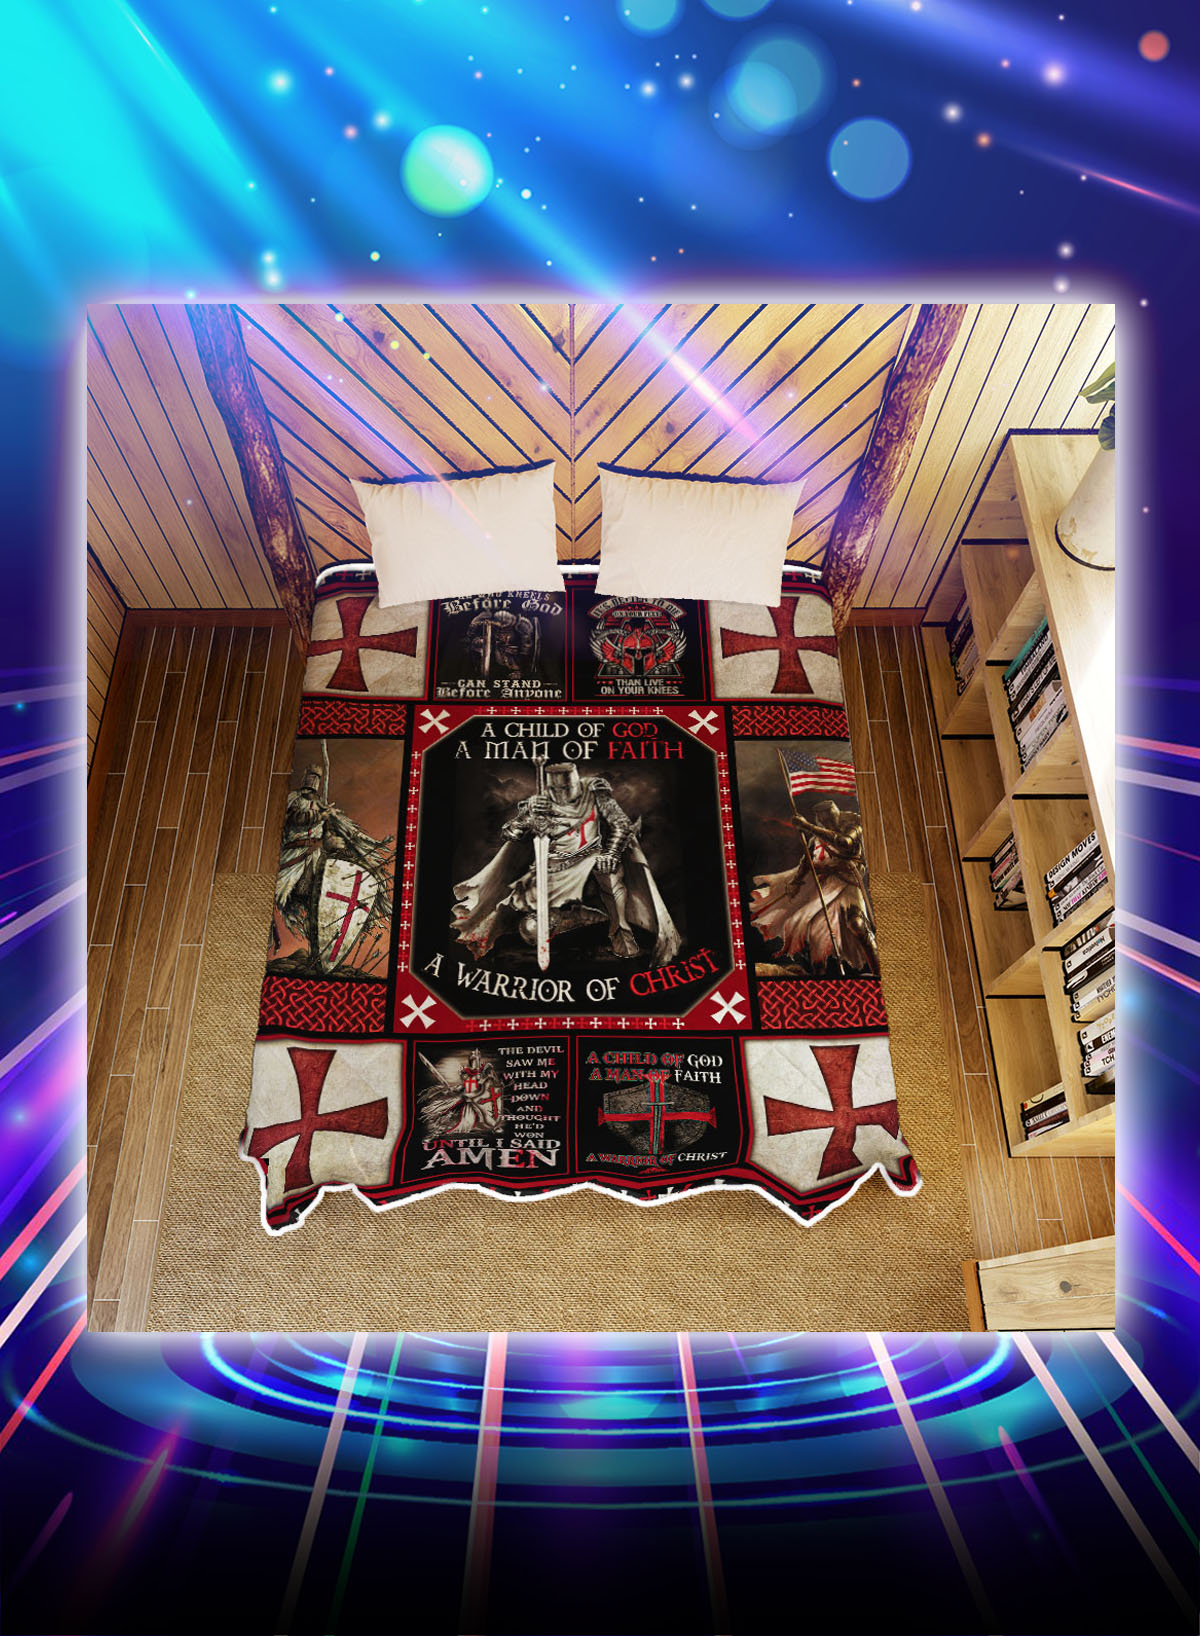 The knights templar a warrior of christ quilt blanket - Picture 1